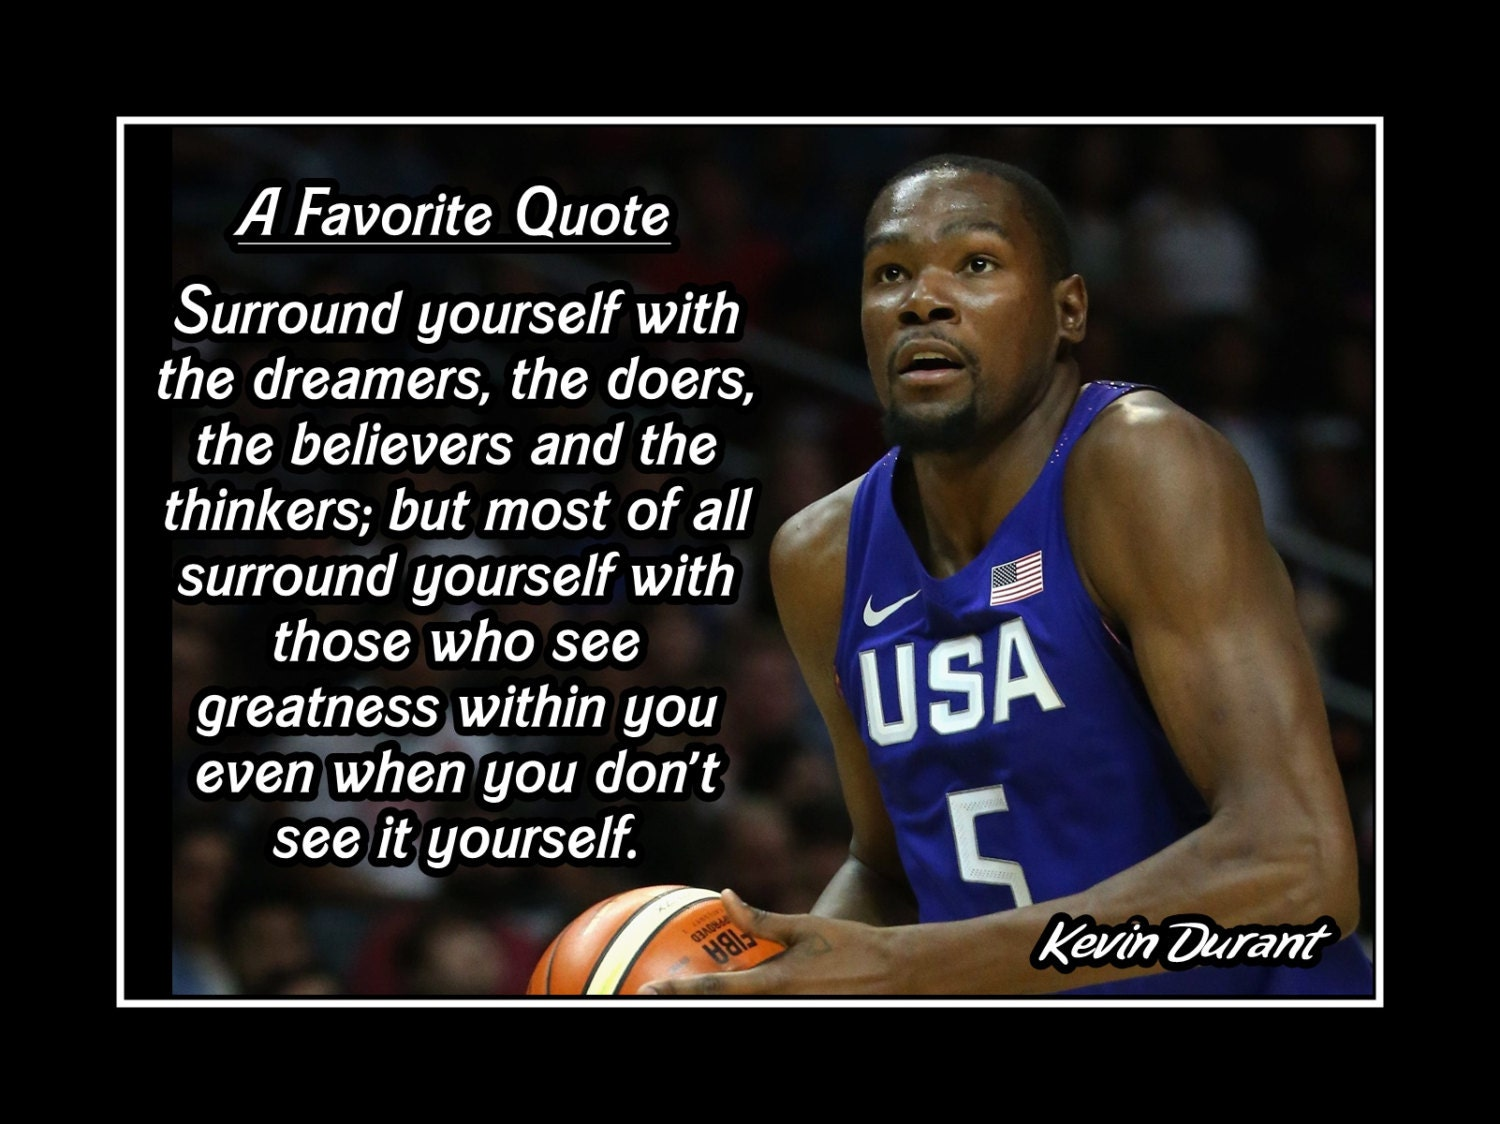 Kevin Durant Quote Kevin Durant Basketball Motivation Poster Coaching Wall Art